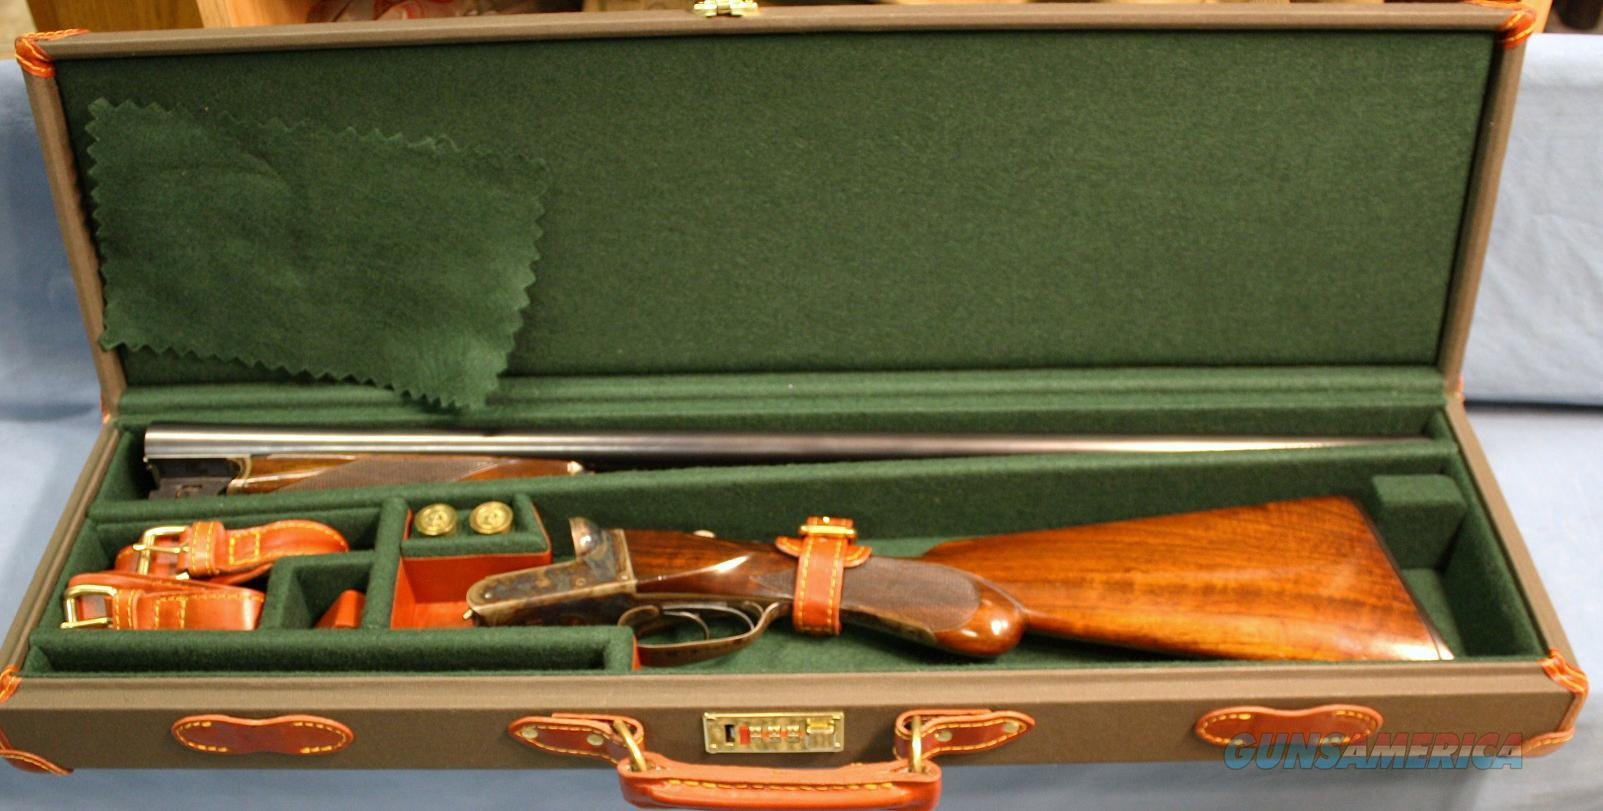 Remington Restored 1894 Double Barrel Shotgun 12 gauge Free Shipping and No Credit Card Fees!   Guns > Shotguns > Remington Shotguns  > Side x Side Modern